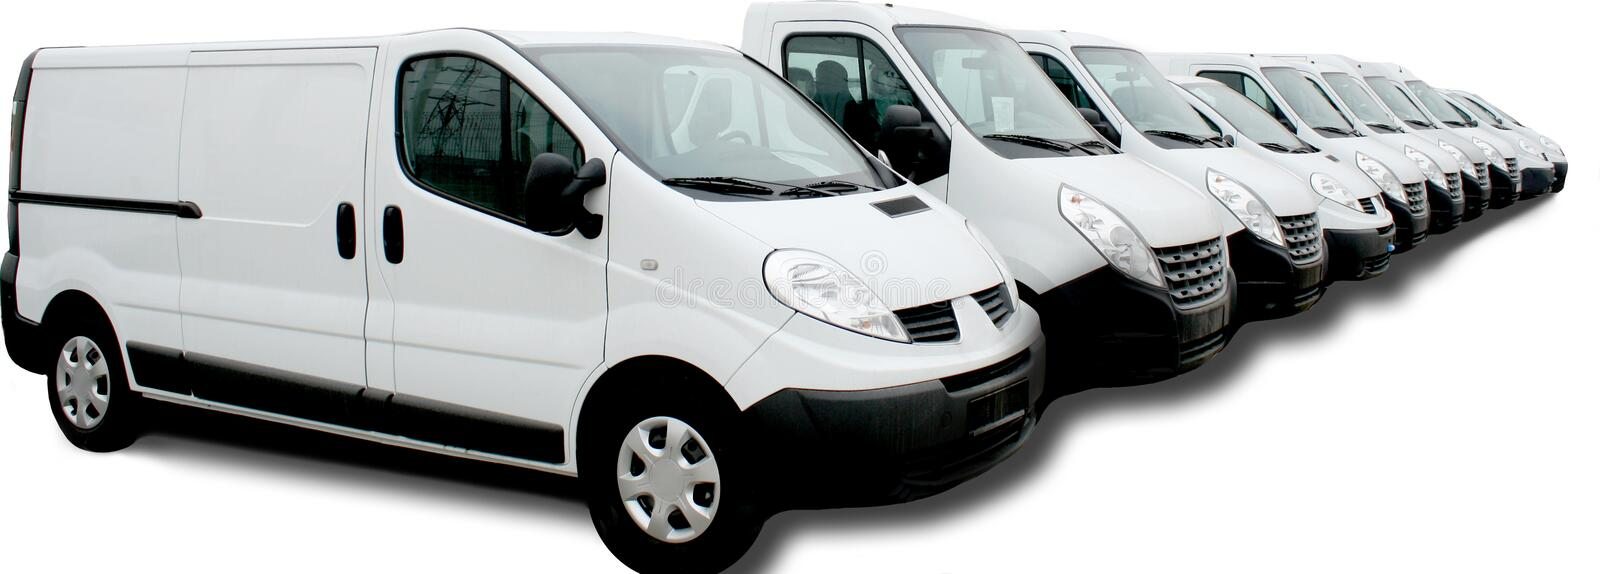 Commercial car fleet. Row of white commercial cars on white background royalty free stock photo